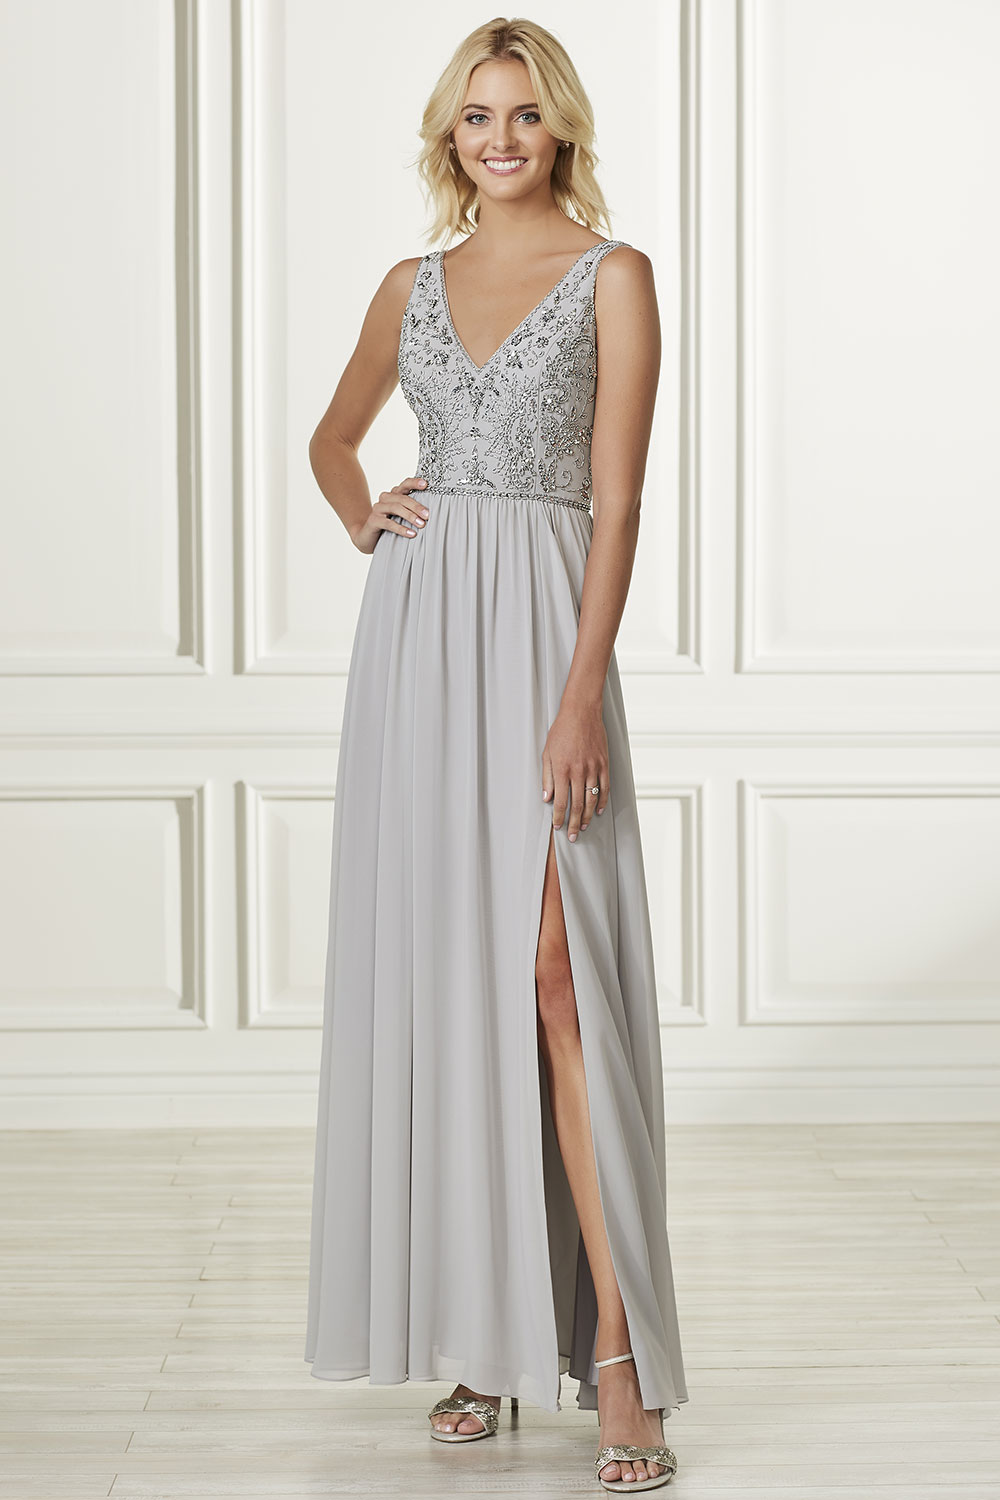 bridesmaid-dresses-adrianna-papell-platinum-26907